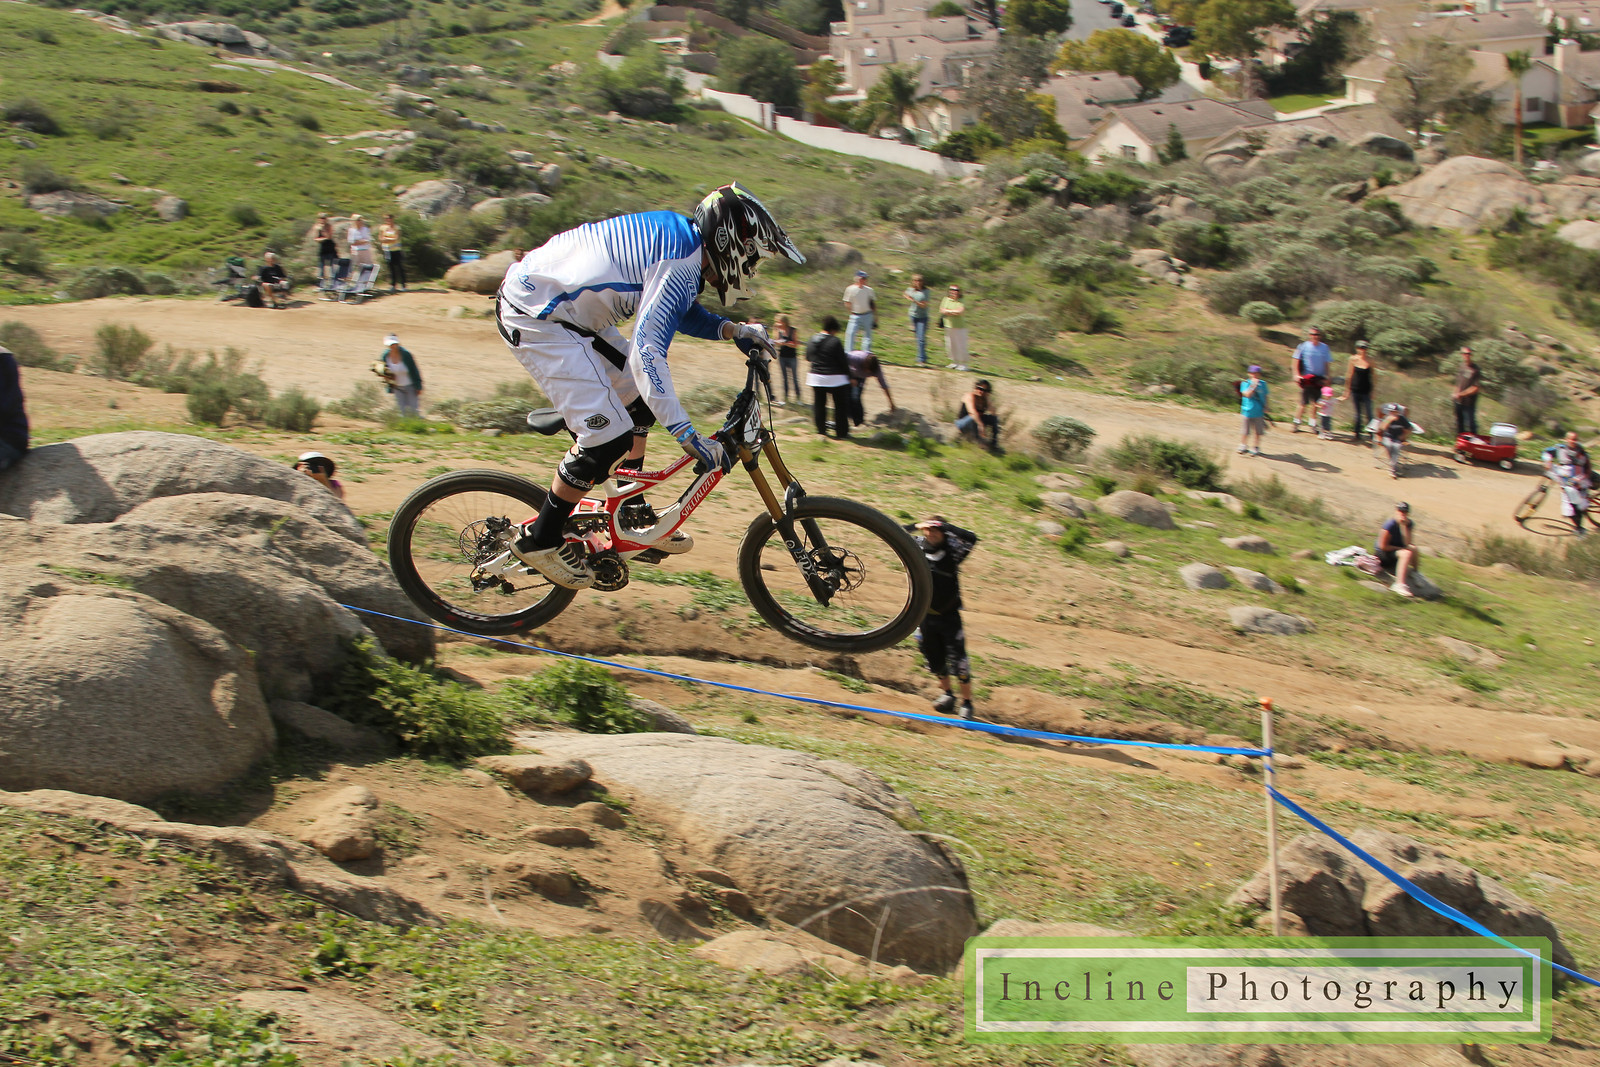 inclinephotography.com - inclinephotography - Mountain Biking Pictures - Vital MTB